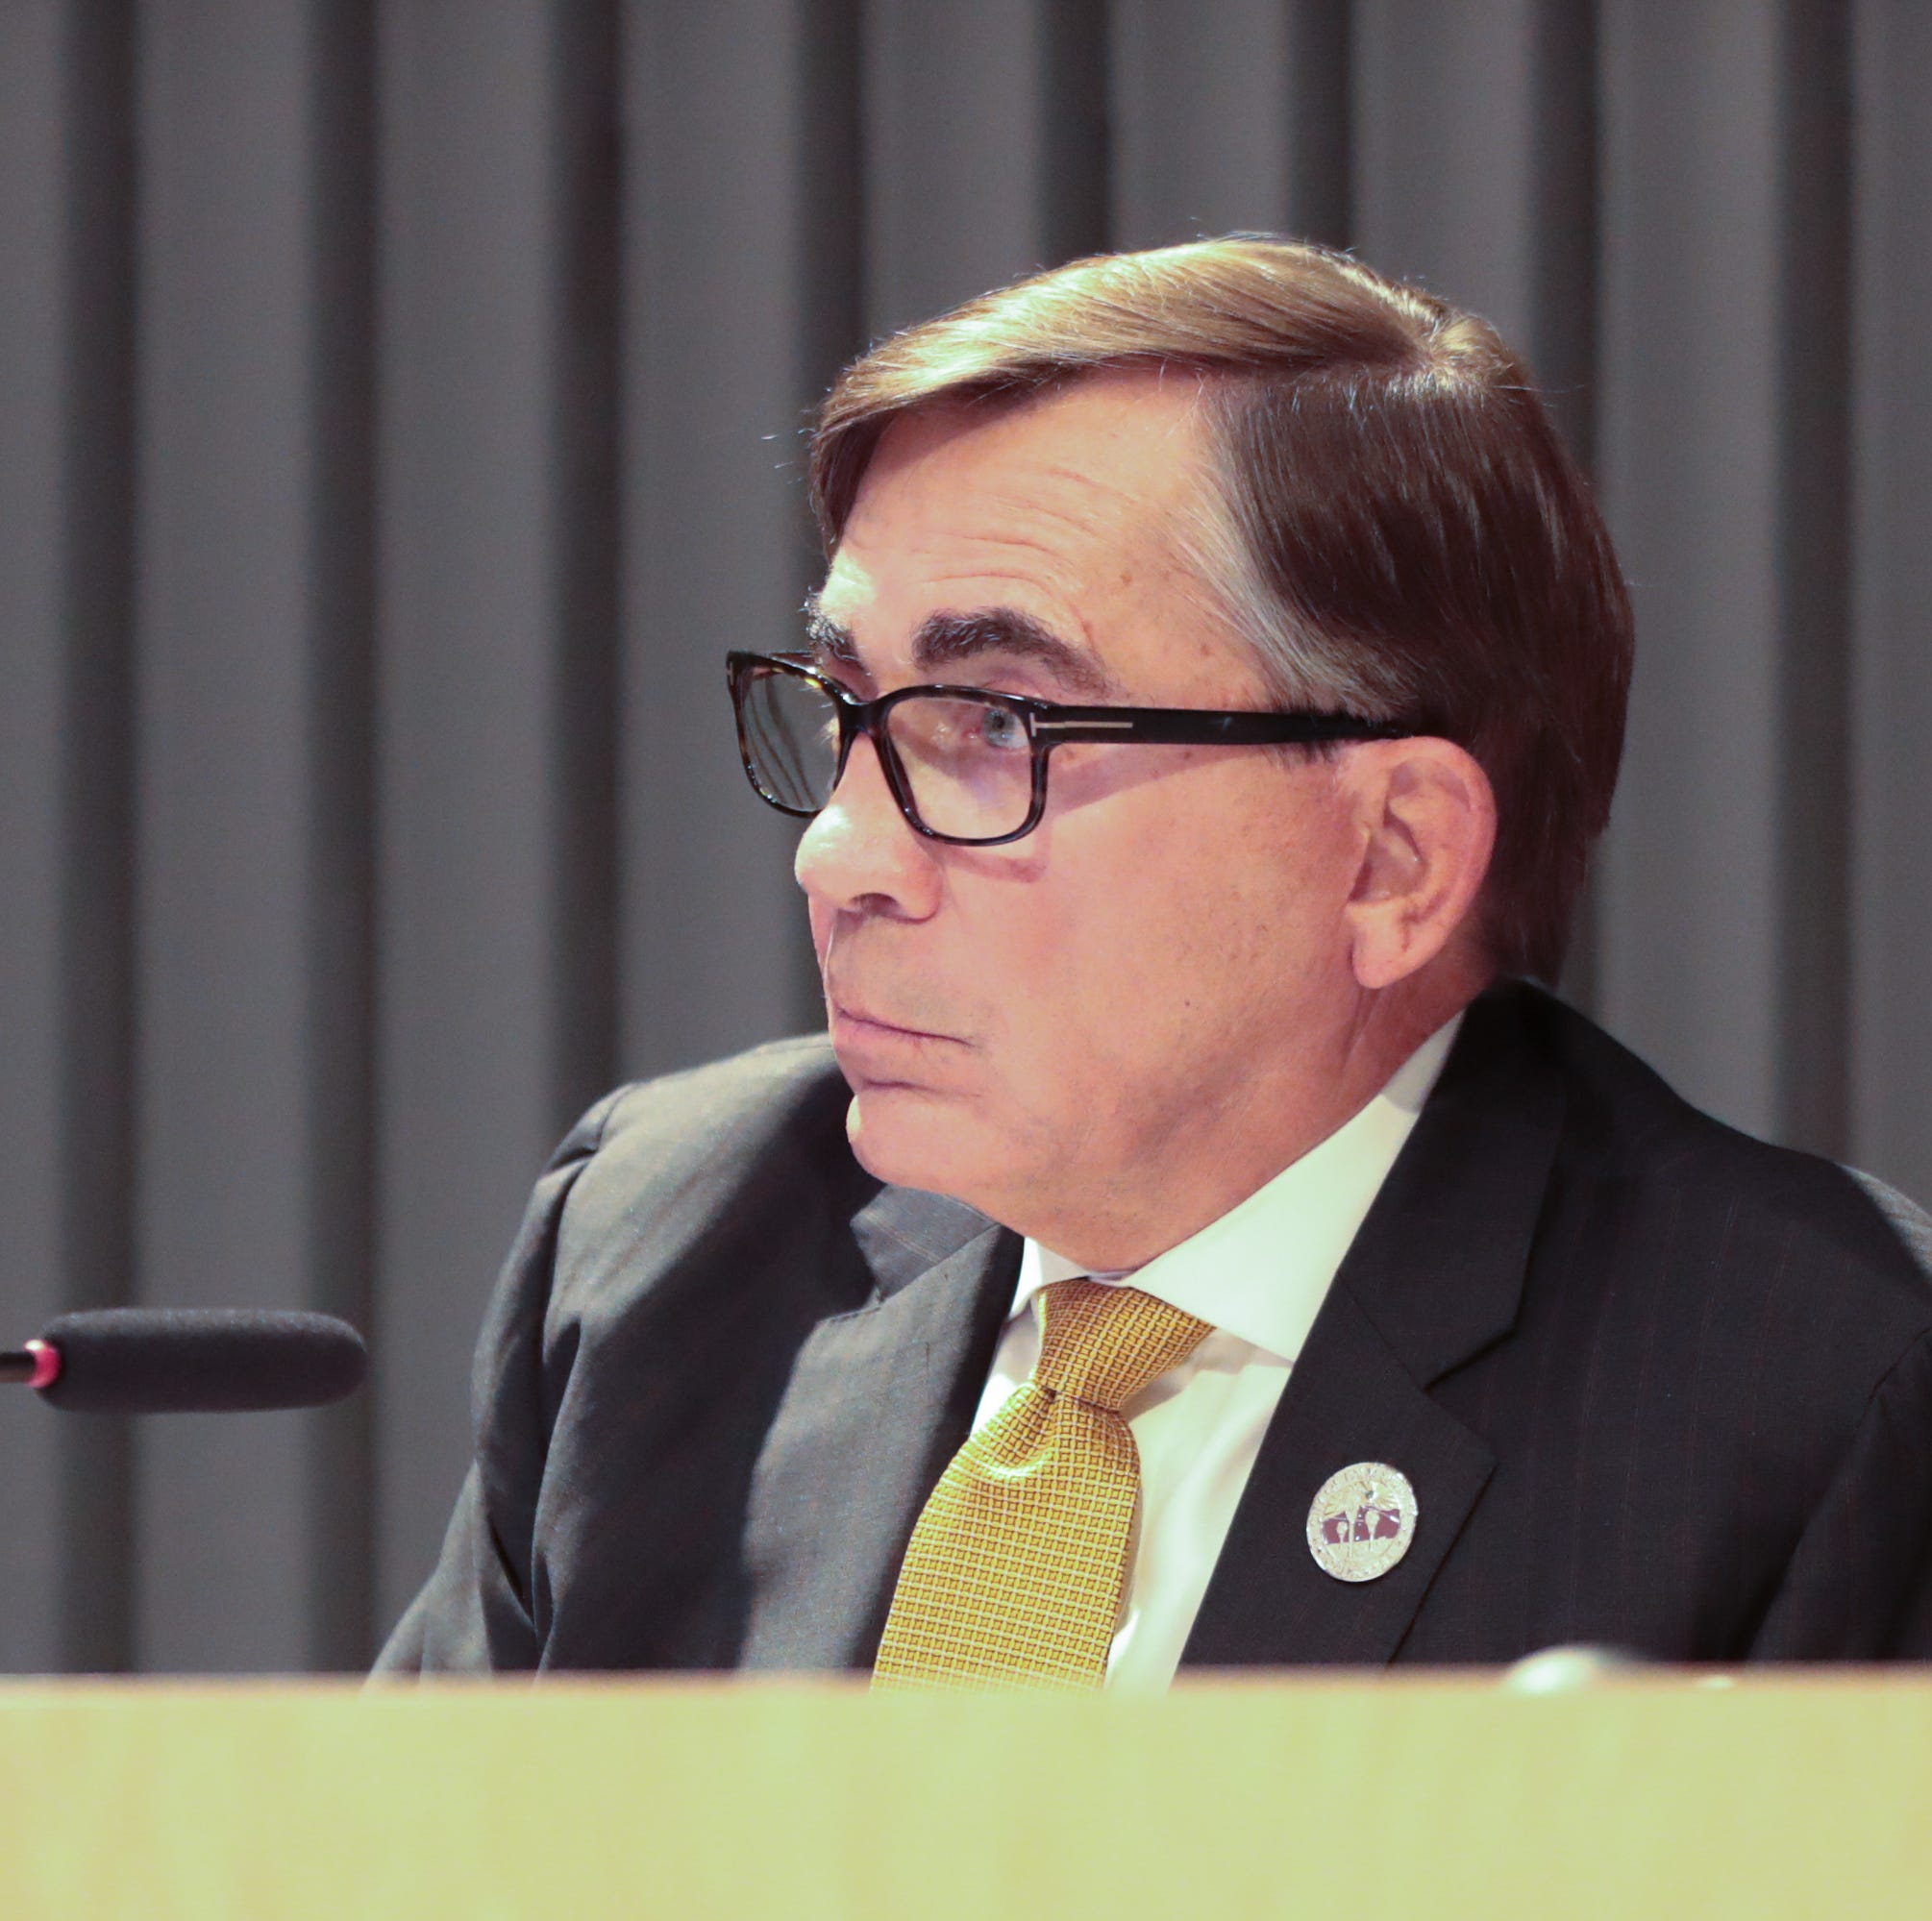 Report: No proof Palm Springs mayor recorded confidential conversations in City Hall